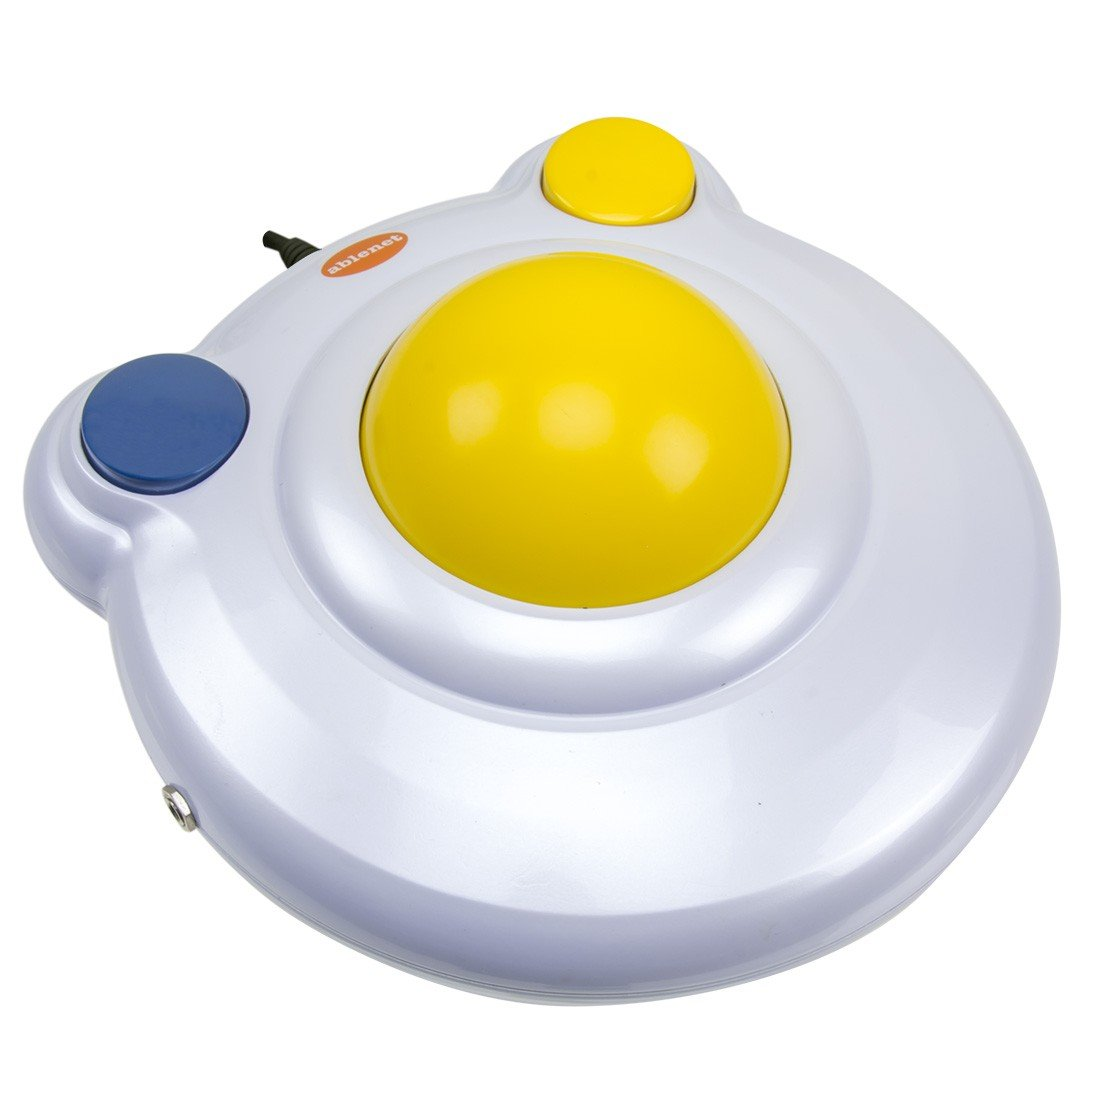 BIGtrack 2.0 Trackball - for Users who Lack Fine Motor Skills to Use a Mouse. A Big 3'' Trackball with 2 Blue (Left and Right Mouse) Buttons -#12000006 by Ablenet